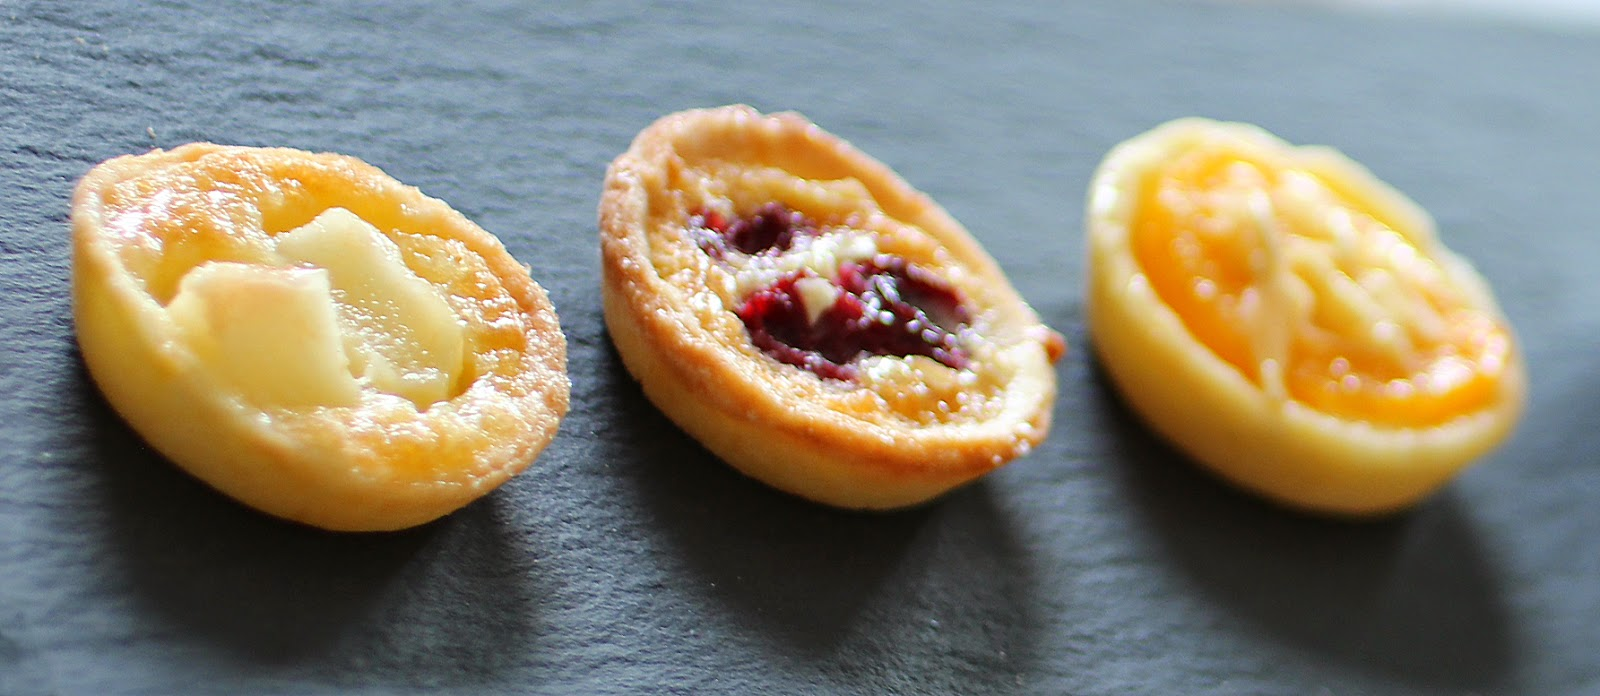 http://camilleenchocolat.blogspot.fr/2014/06/tartelettes-aux-fruits.html